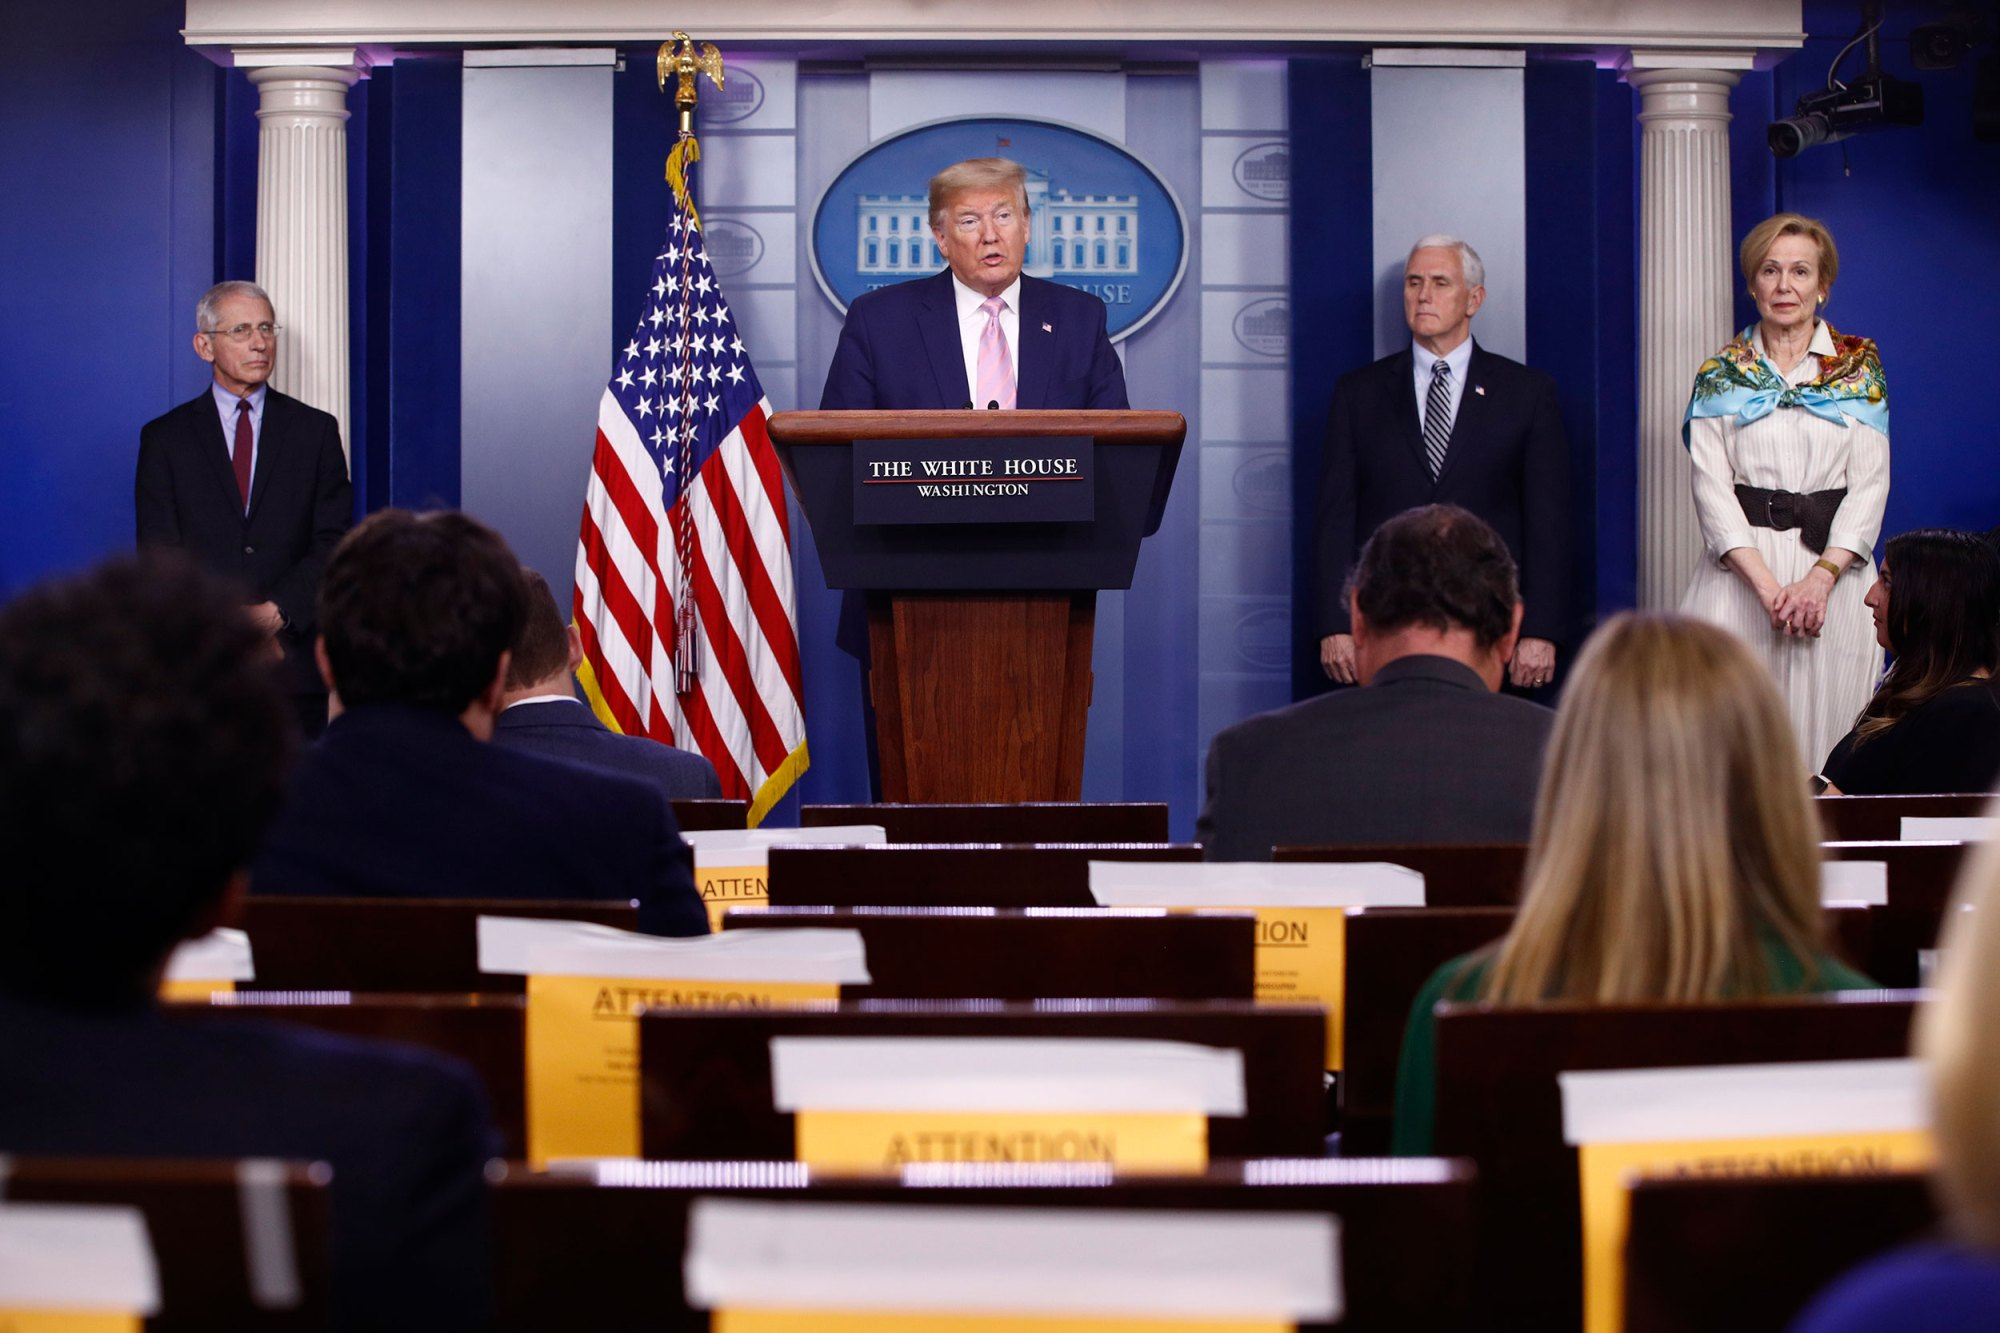 President Donald Trump speaks during a coronavirus task force briefing at the White House, Saturday, April 4, 2020, in Washington. President Donald Trump said he is considering a second coronavirus task force focused on reopening the country's economy. (Patrick Semansky/AP)